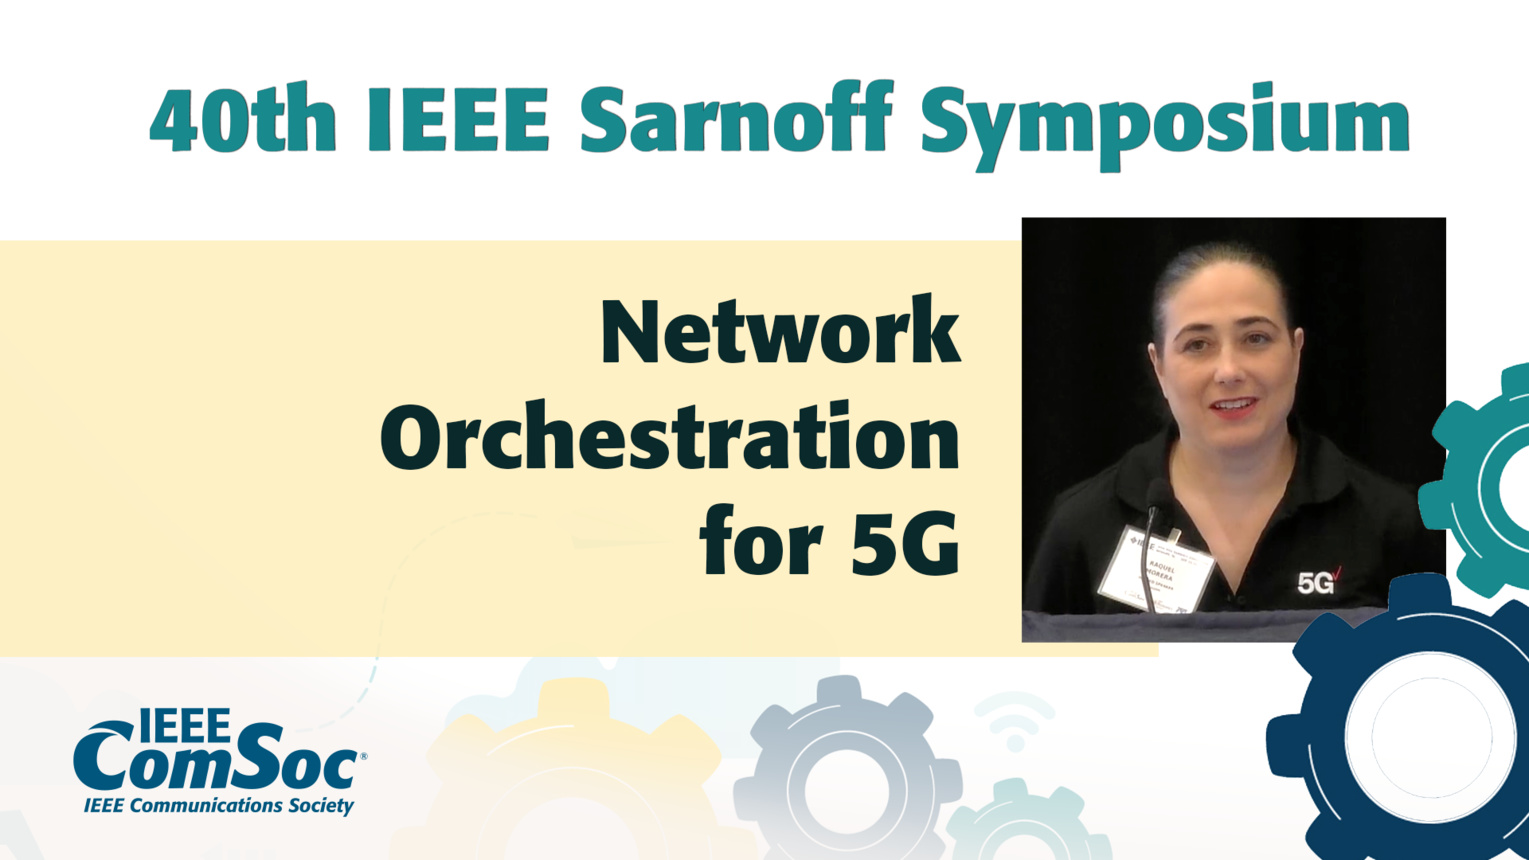 Network Orchestration for 5G - Raquel Morera - IEEE Sarnoff Symposium, 2019